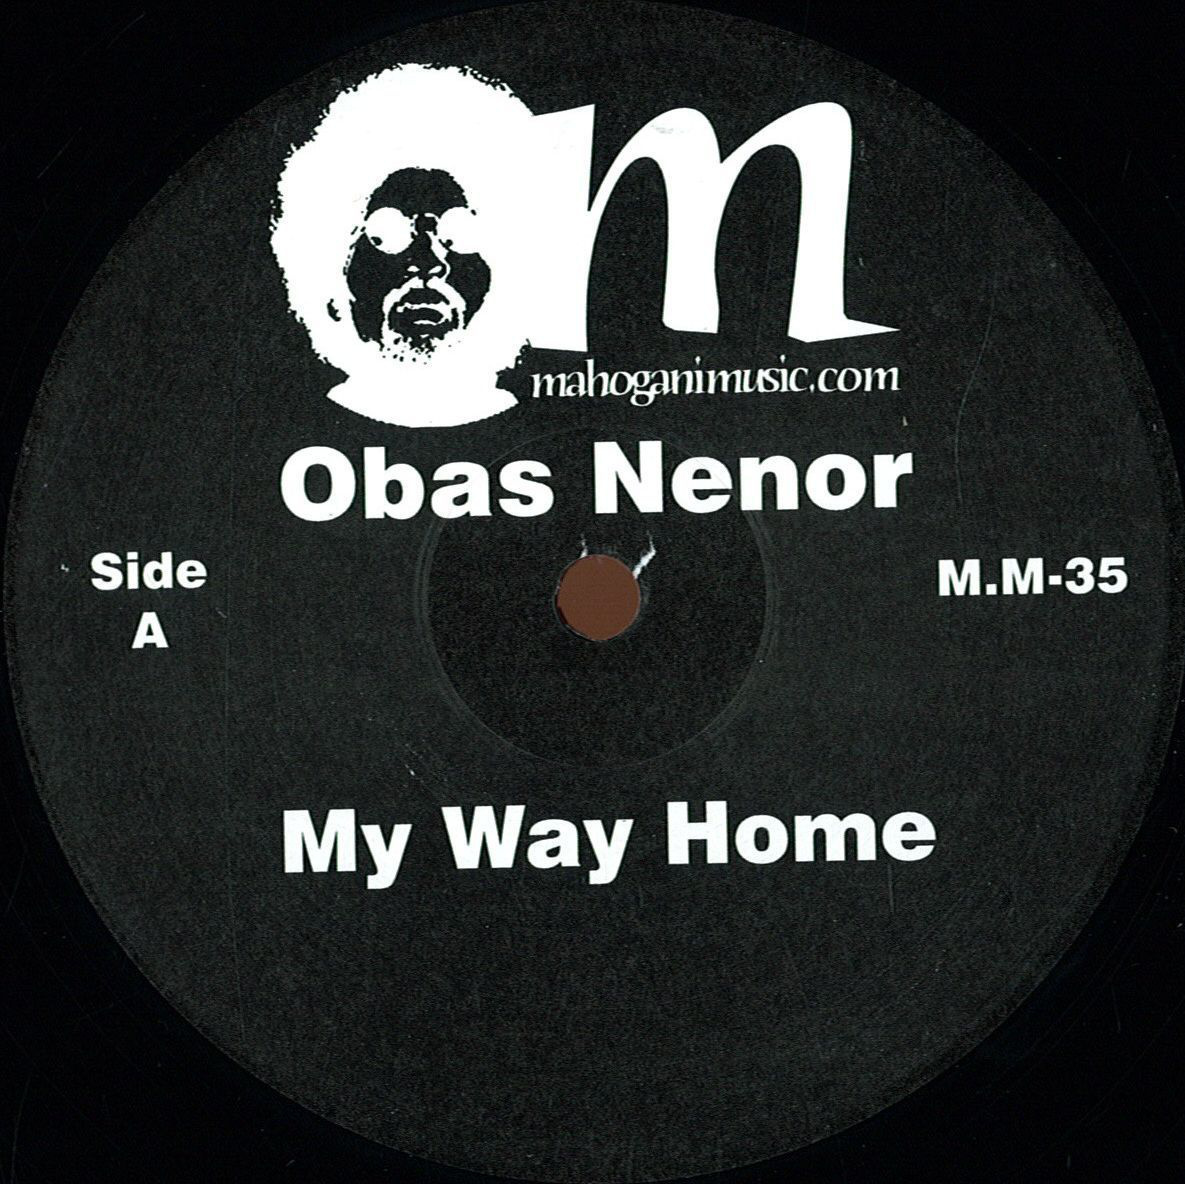 Obas Nenor - My Way Home [M.M-35]